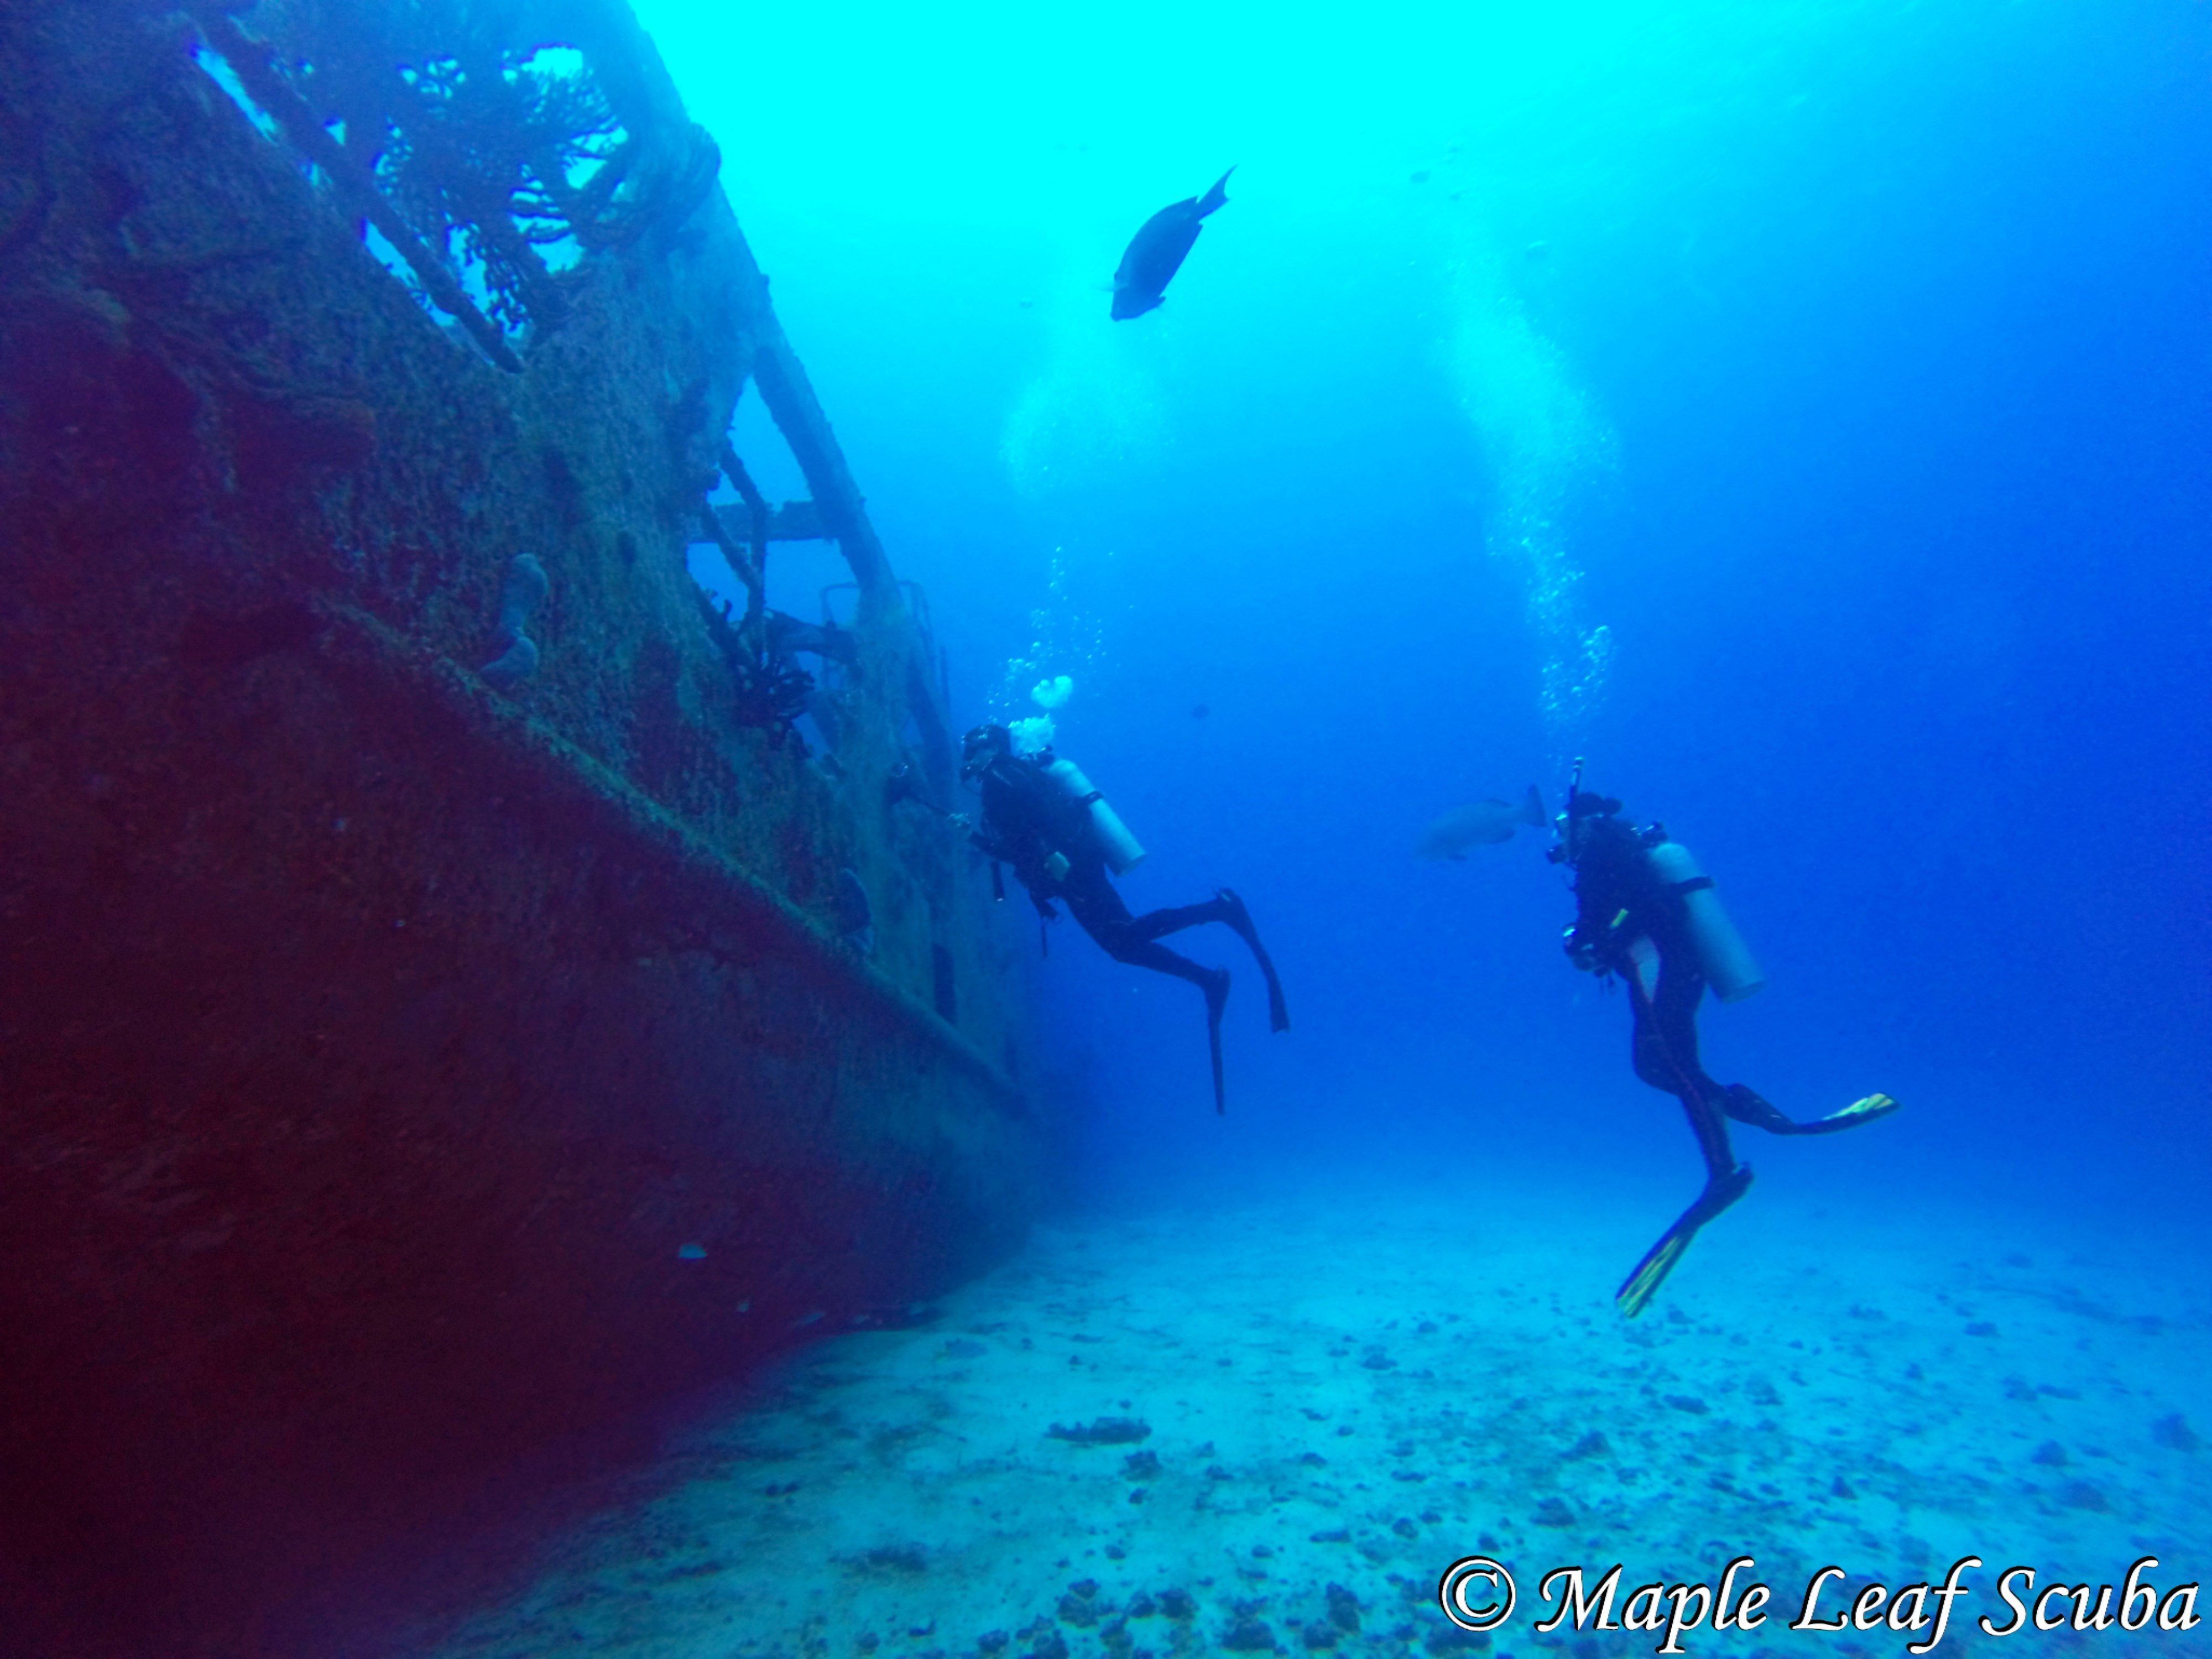 Diving the C53 Felipe Xicotencatl Ship Wreck in Cozumel